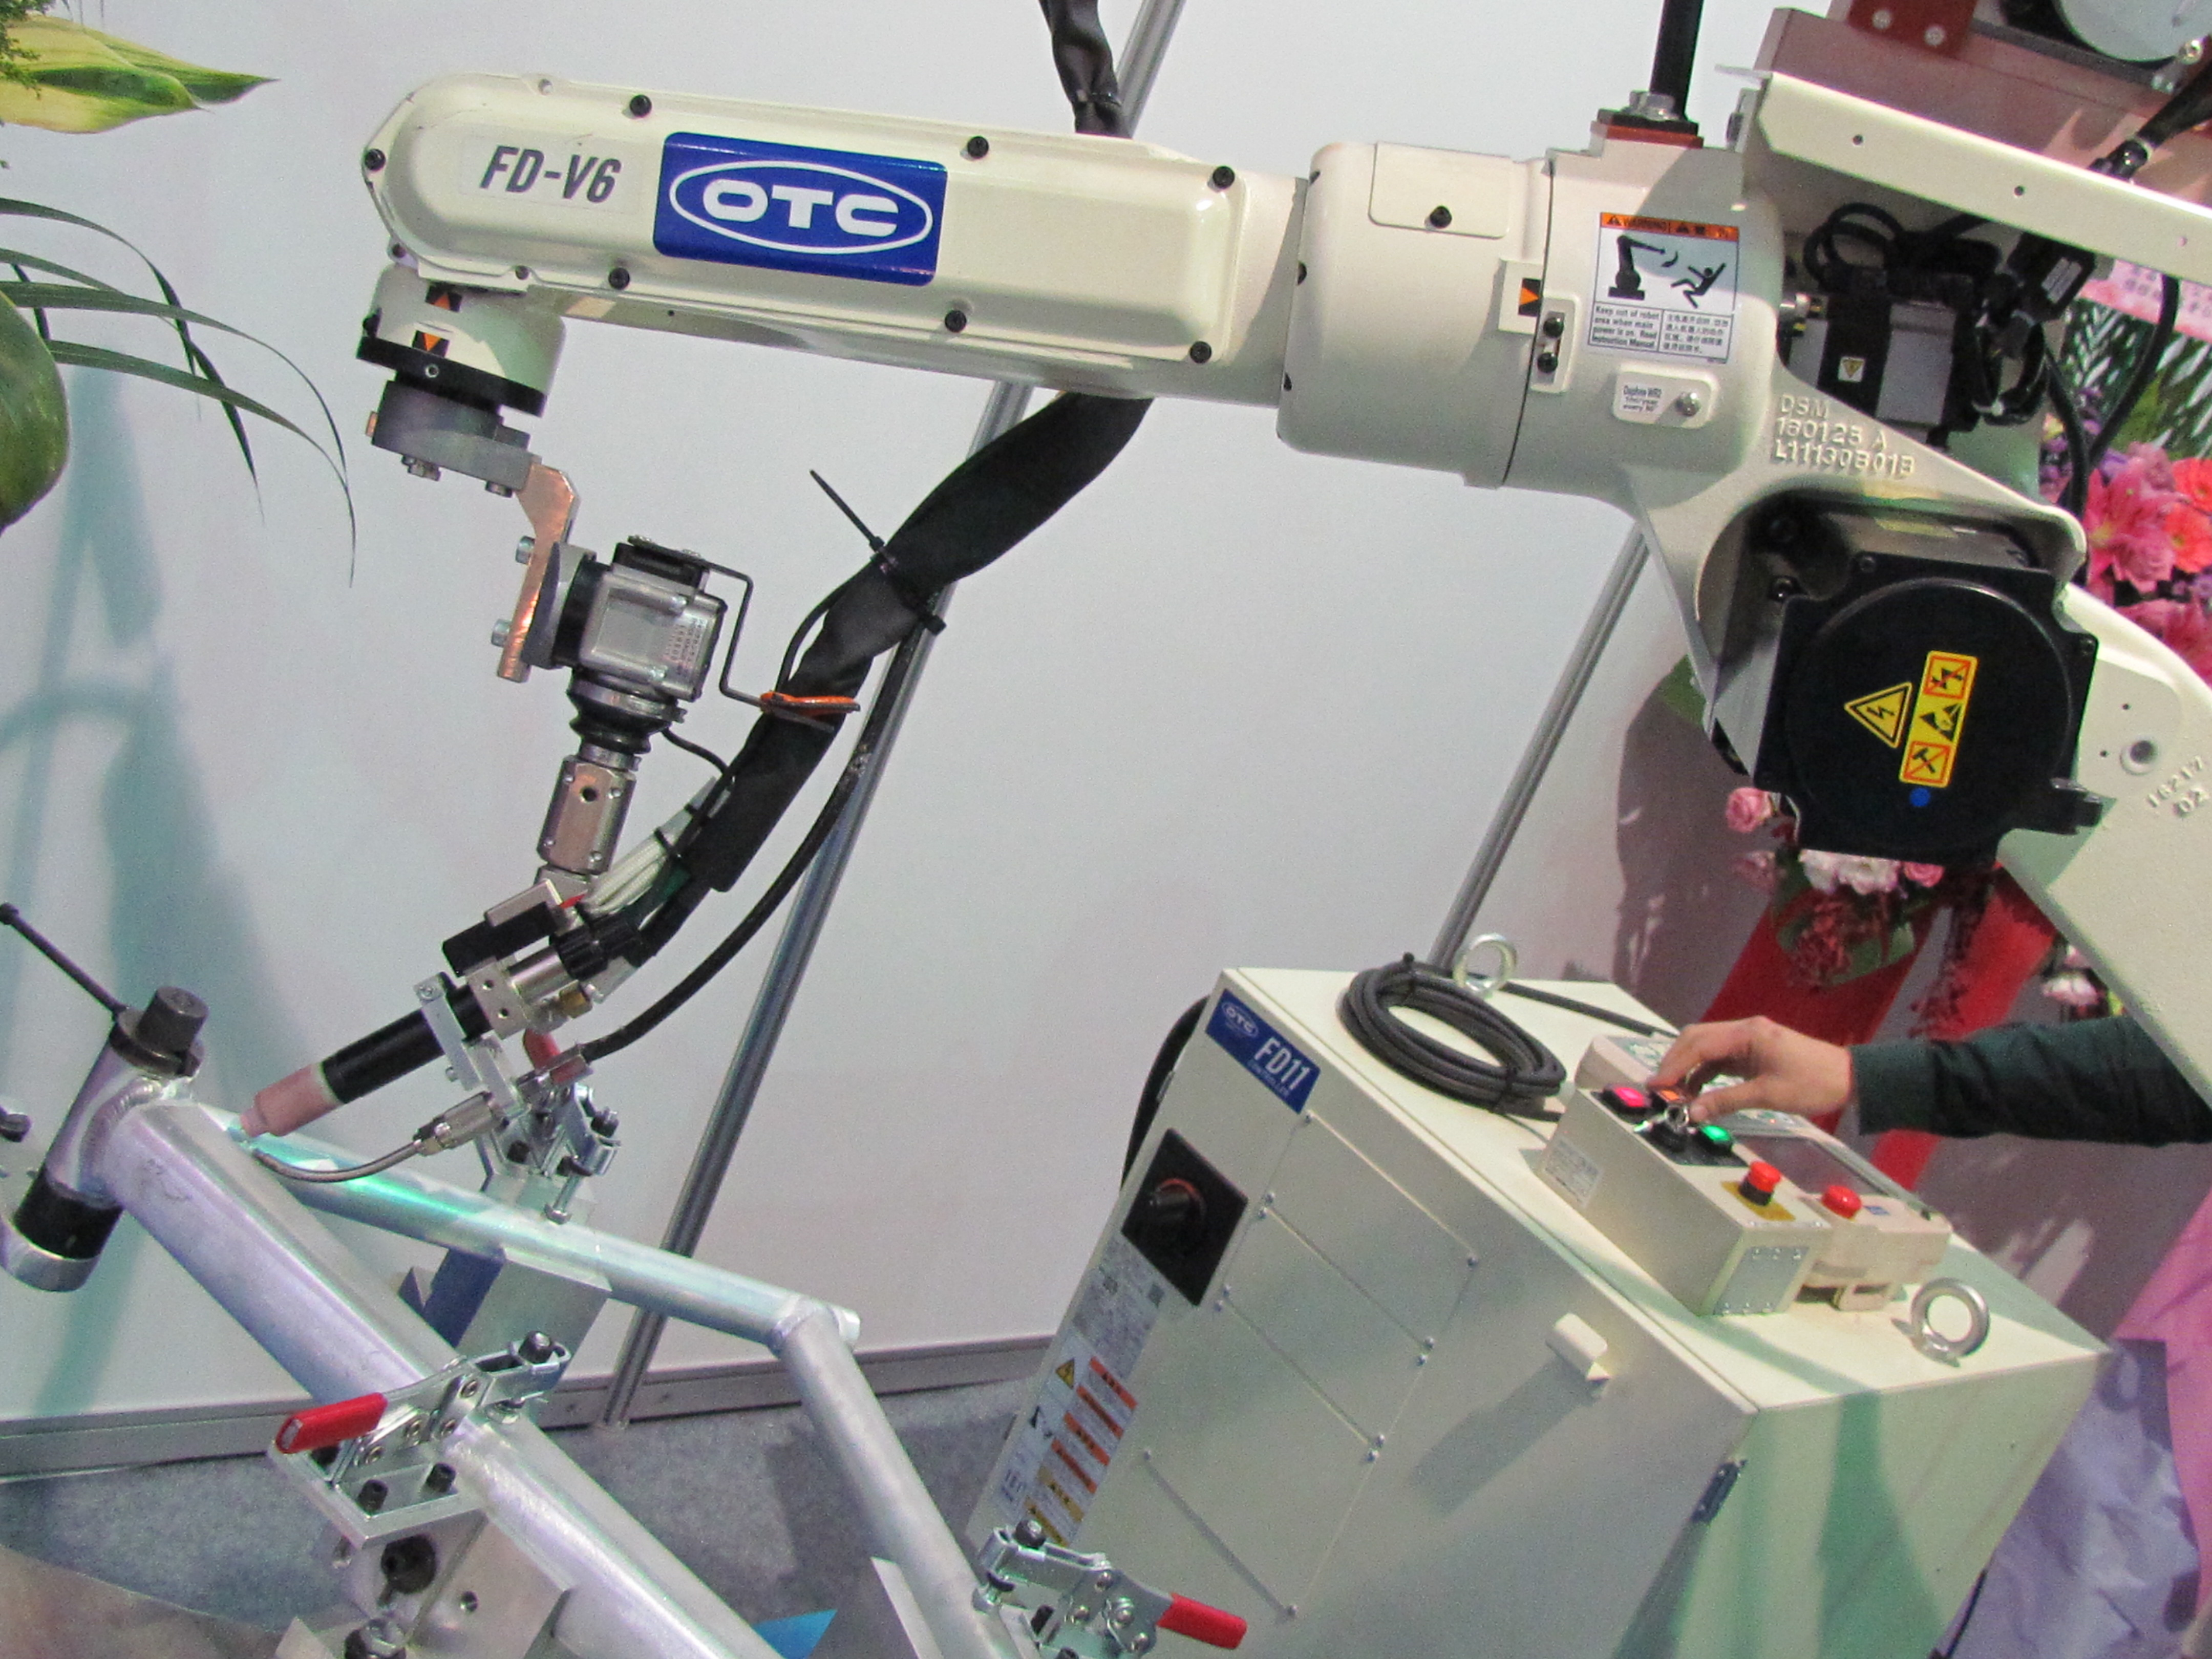 Robot Alloy Welders By Shuz Tung At Traingles Portugal Bike Europe